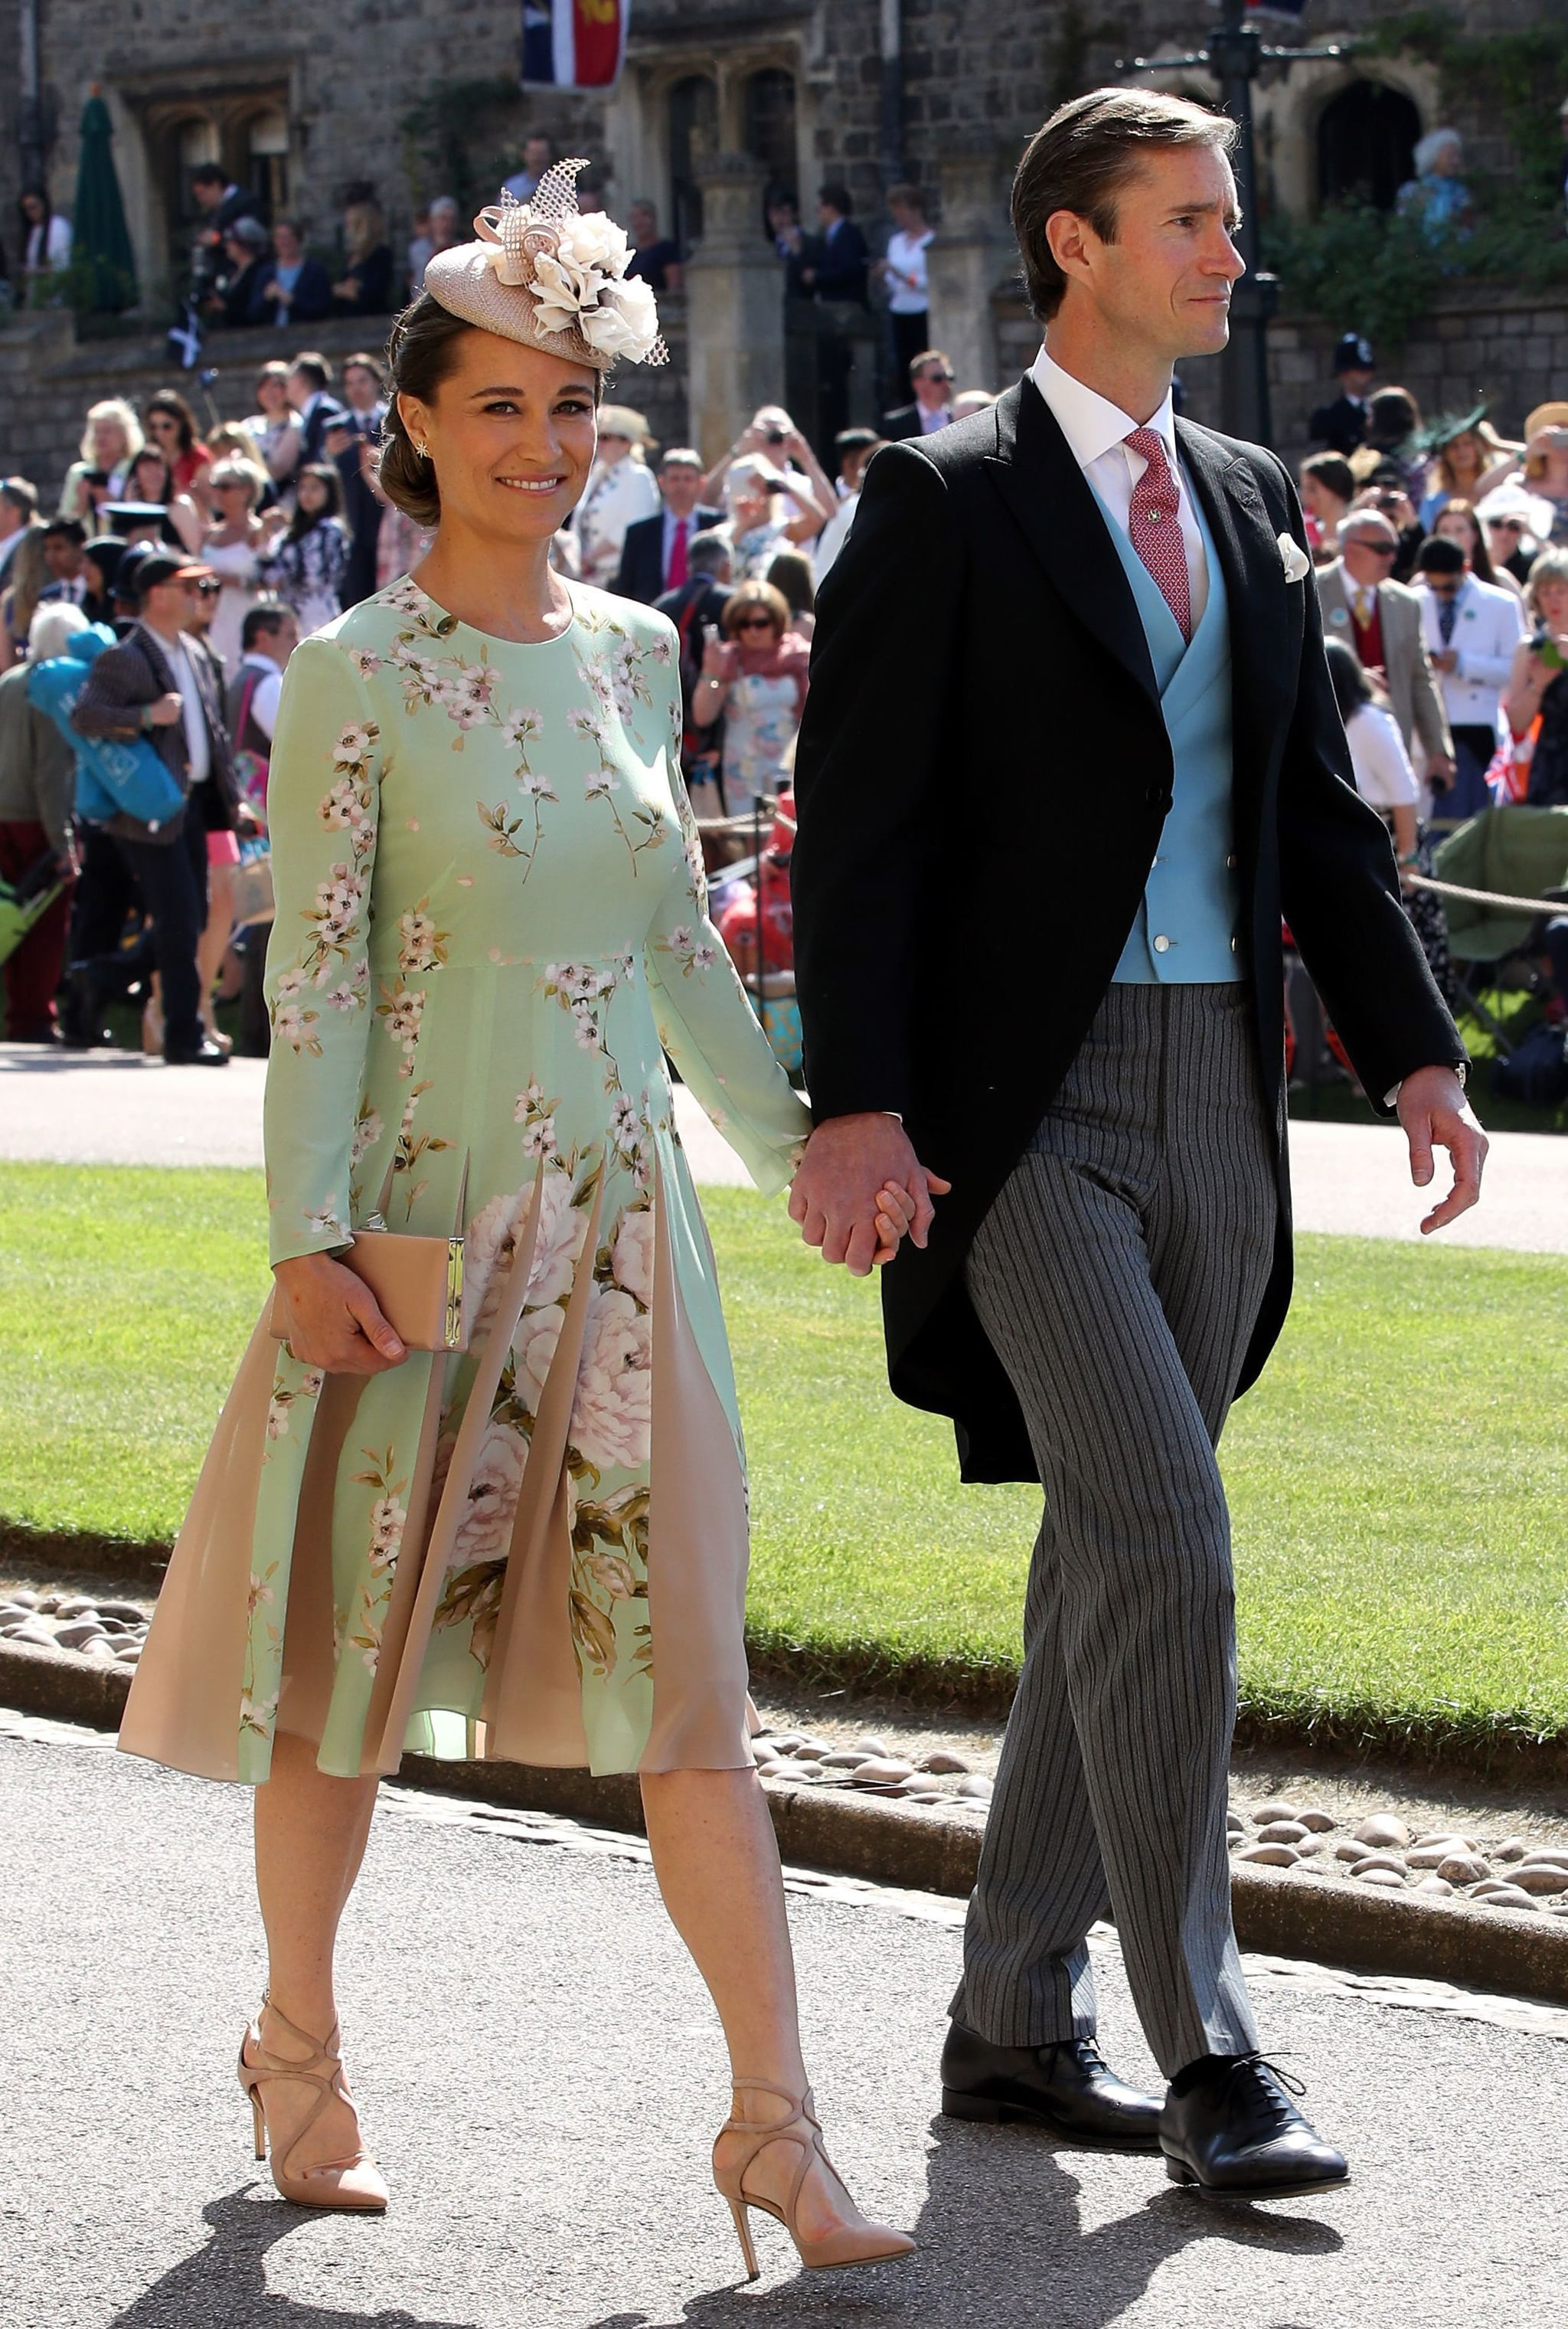 Pippa Middleton and James Matthews arrive for the wedding ceremony of Britain's Prince Harry, Duke of Sussex and US actress Meghan Markle at St George's Chapel, Windsor Castle, in Windsor, on May 19, 2018. (Photo by Chris Radburn / POOL / AFP)        (Photo credit should read CHRIS RADBURN/AFP via Getty Images)